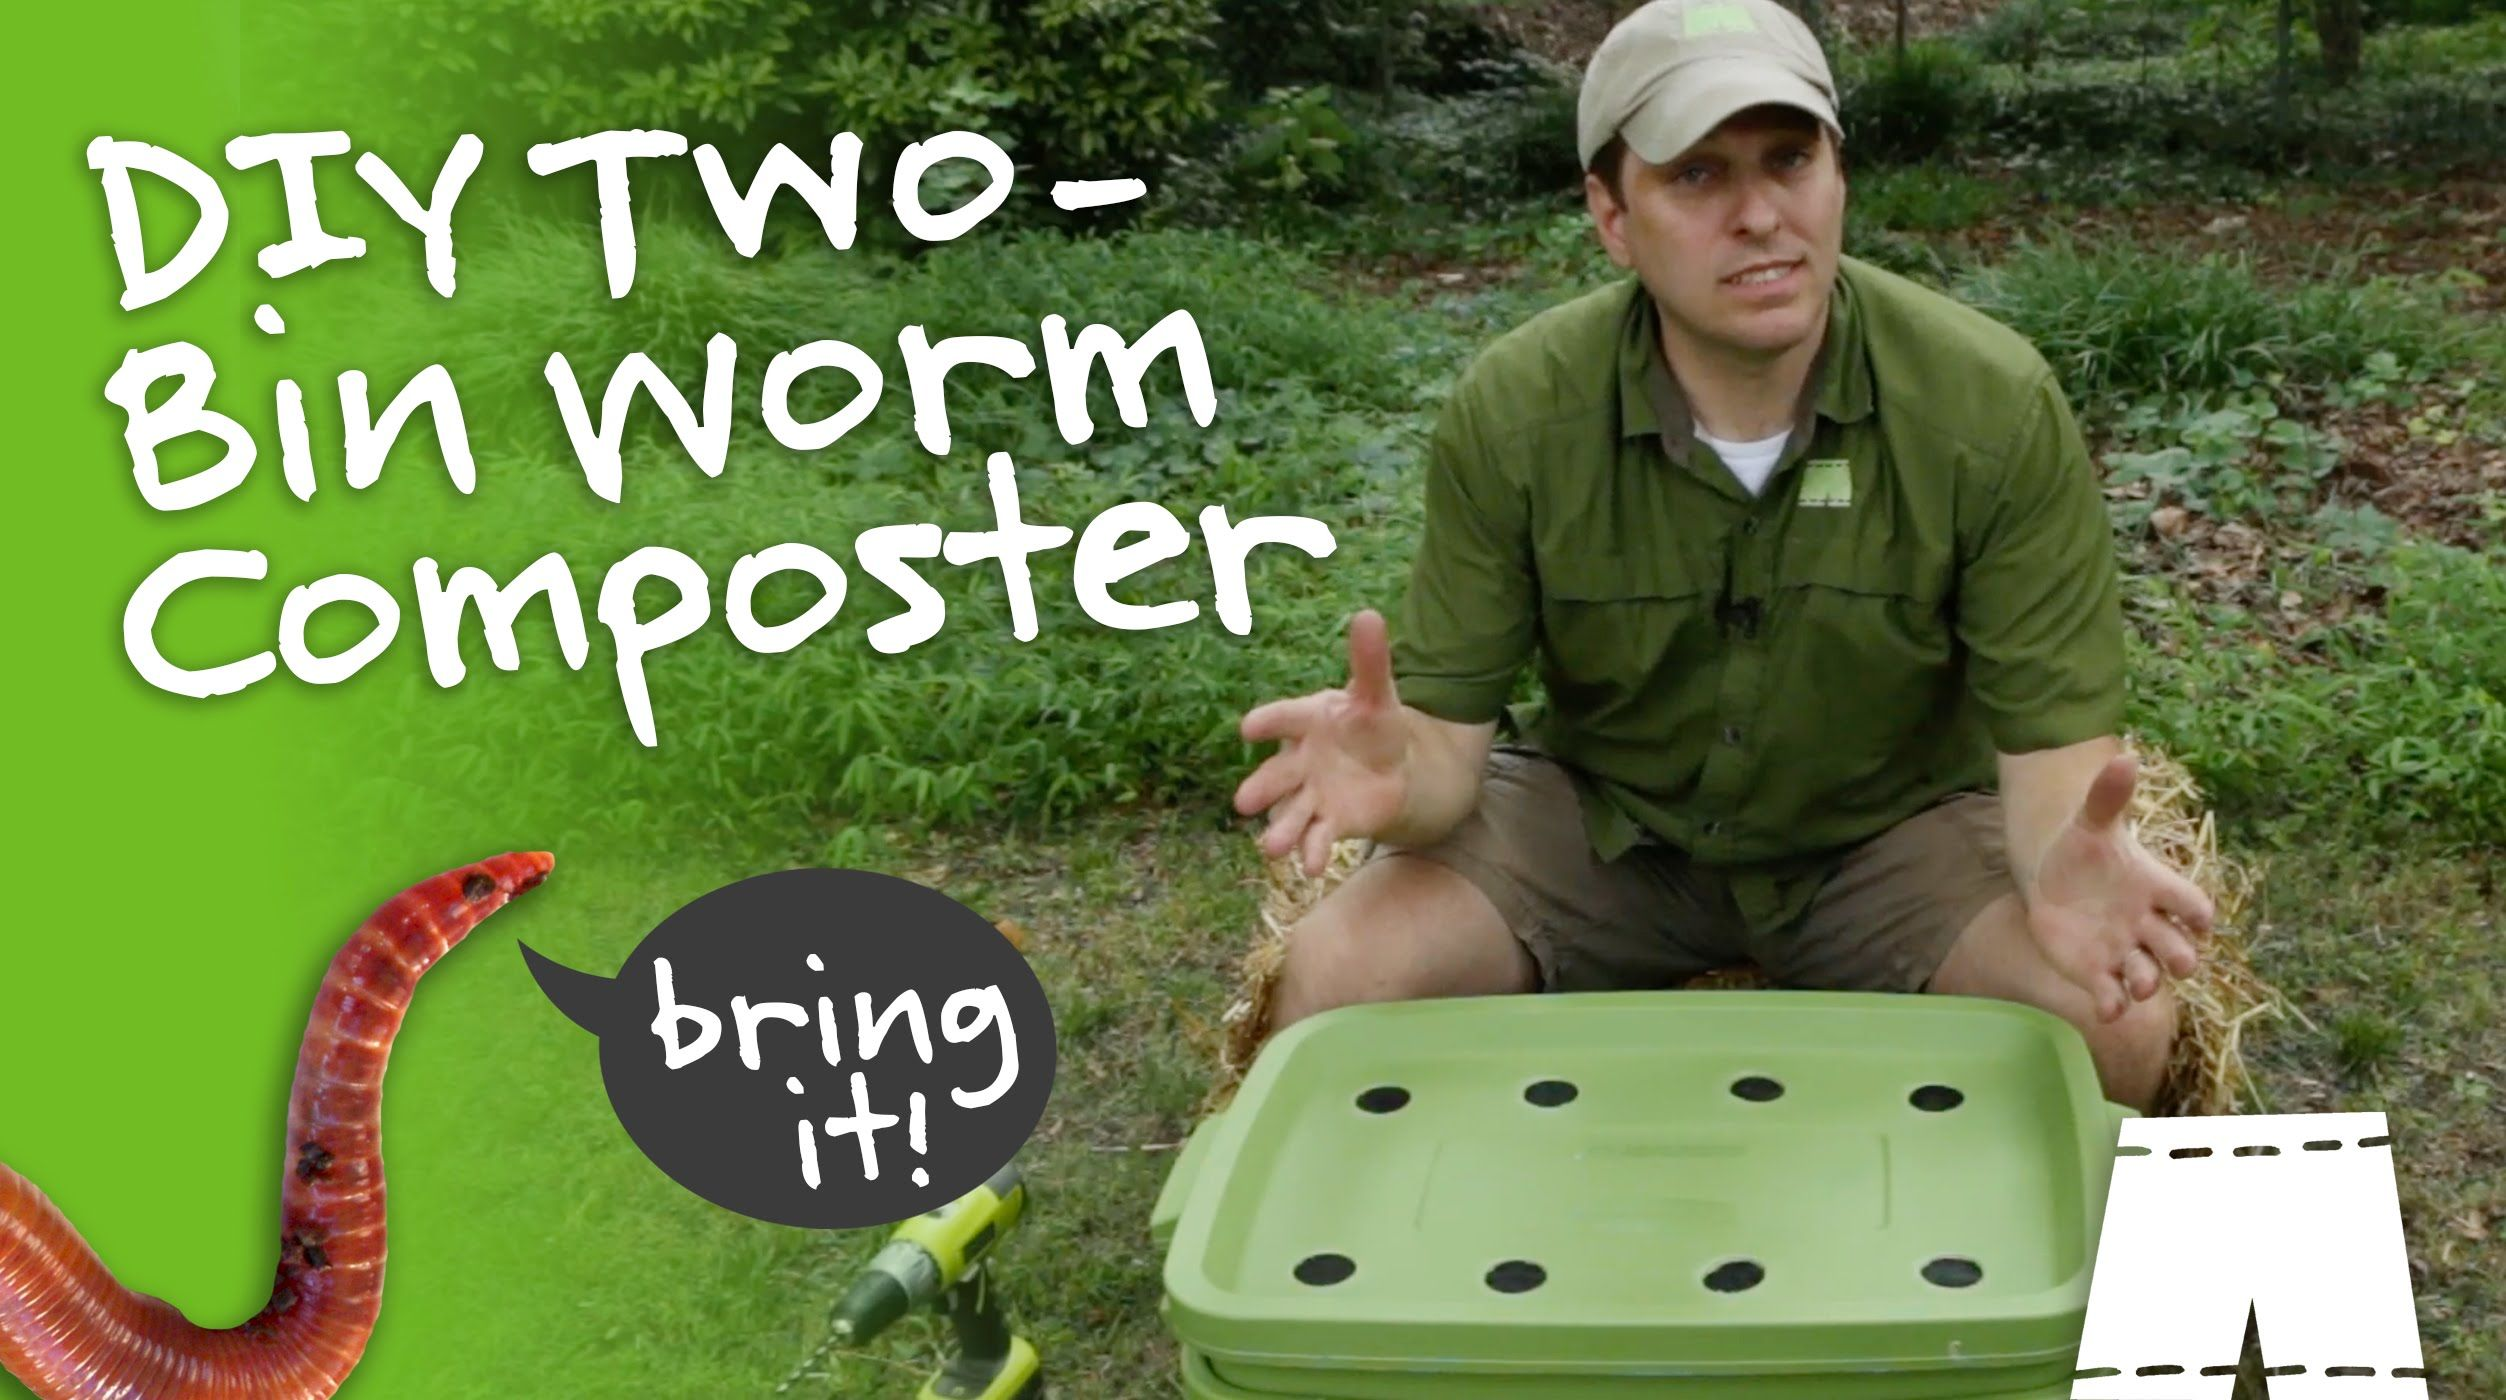 How to make a diy worm composting bin with images worm